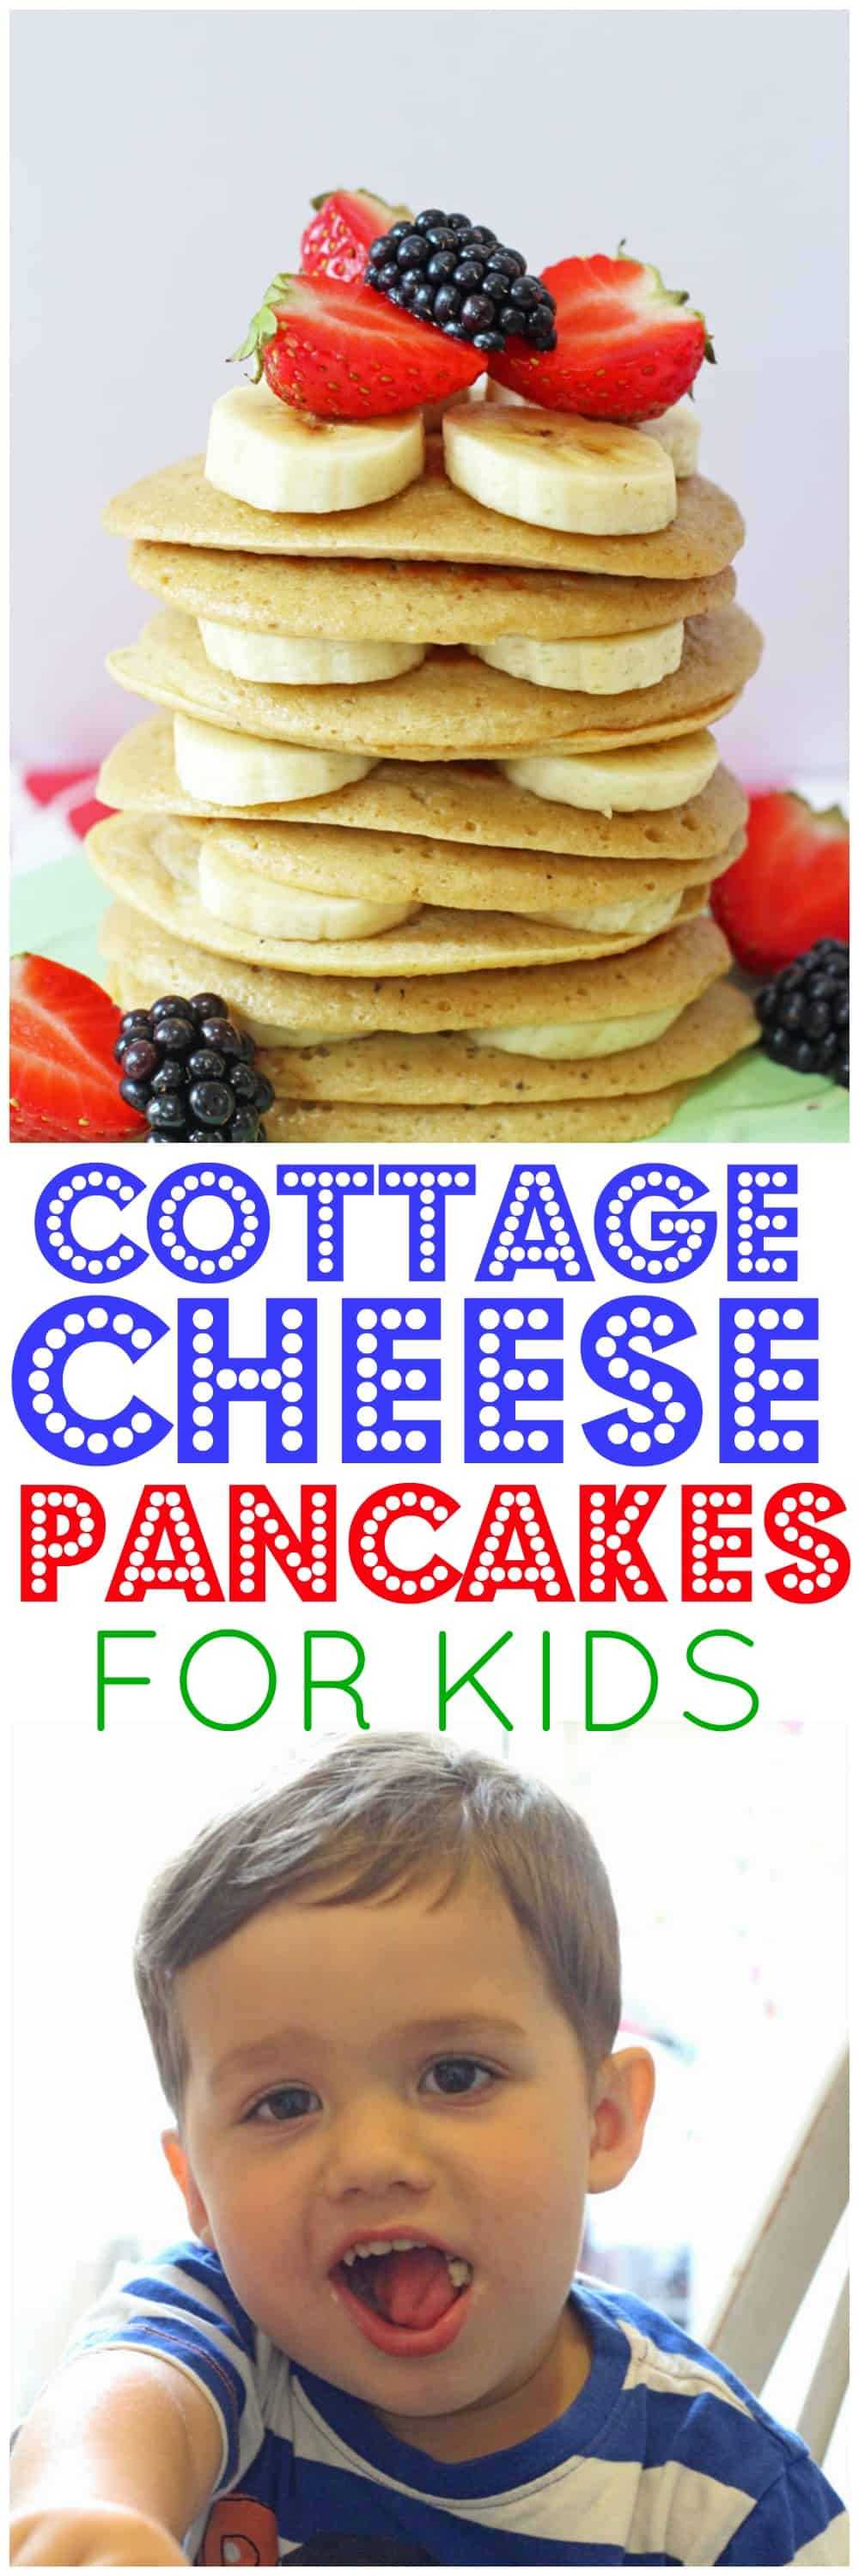 Delicious and nutritious Cottage Cheese Pancakes packed full of protein, slow releasing carbs and with no refined sugar. The perfect healthy breakfast or snack the whole family will love!